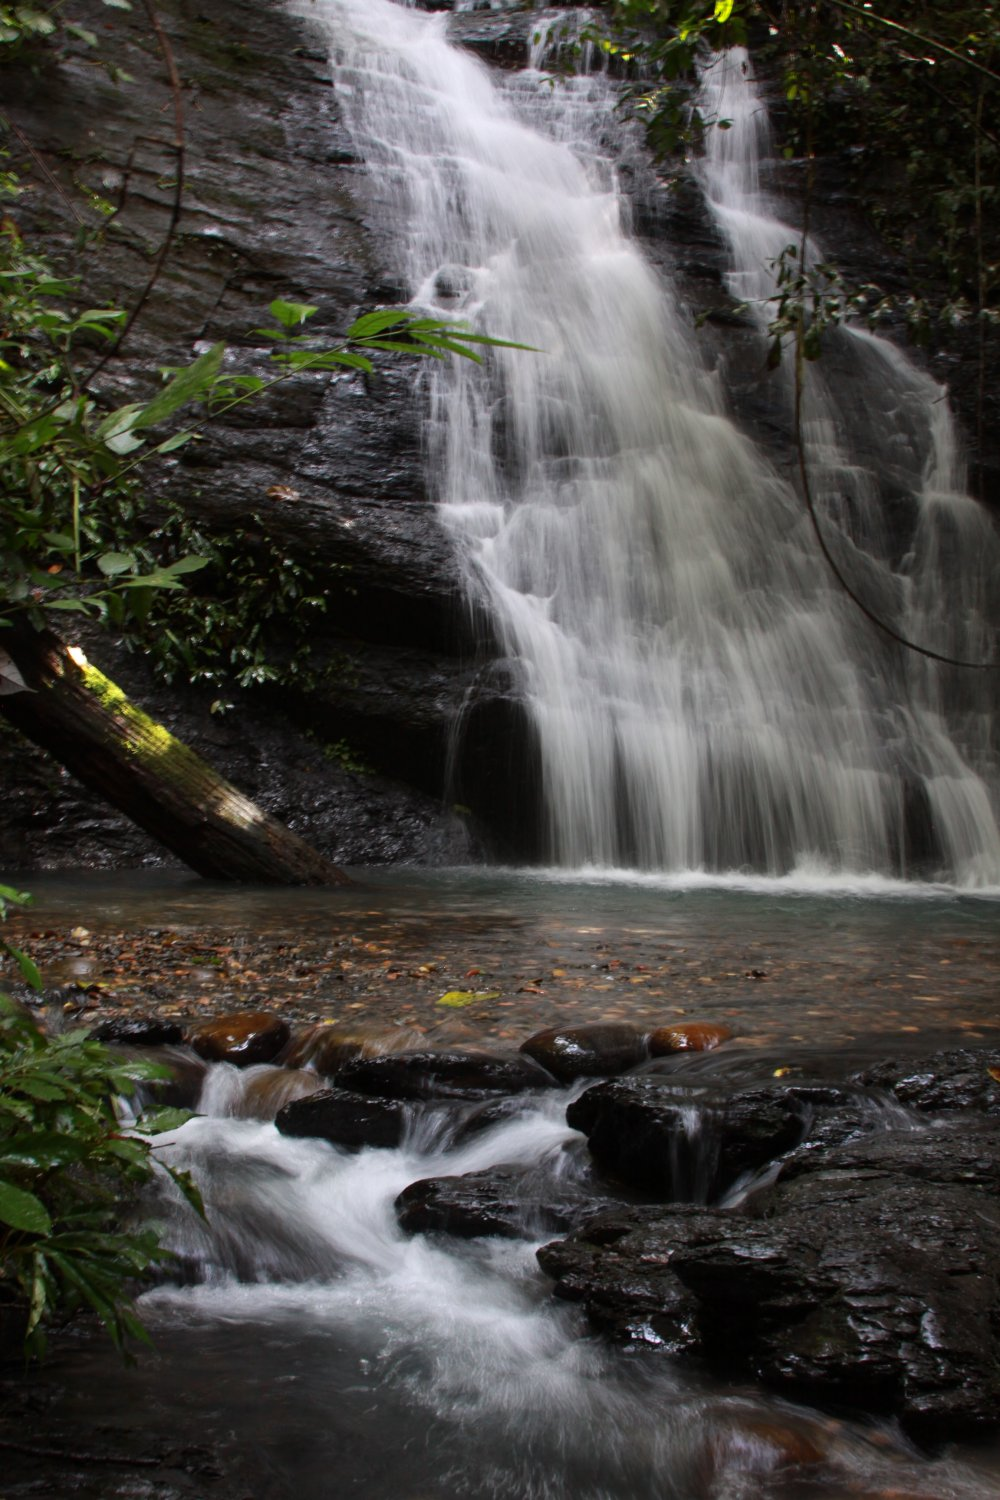 Waterfall in jungles of Brunei